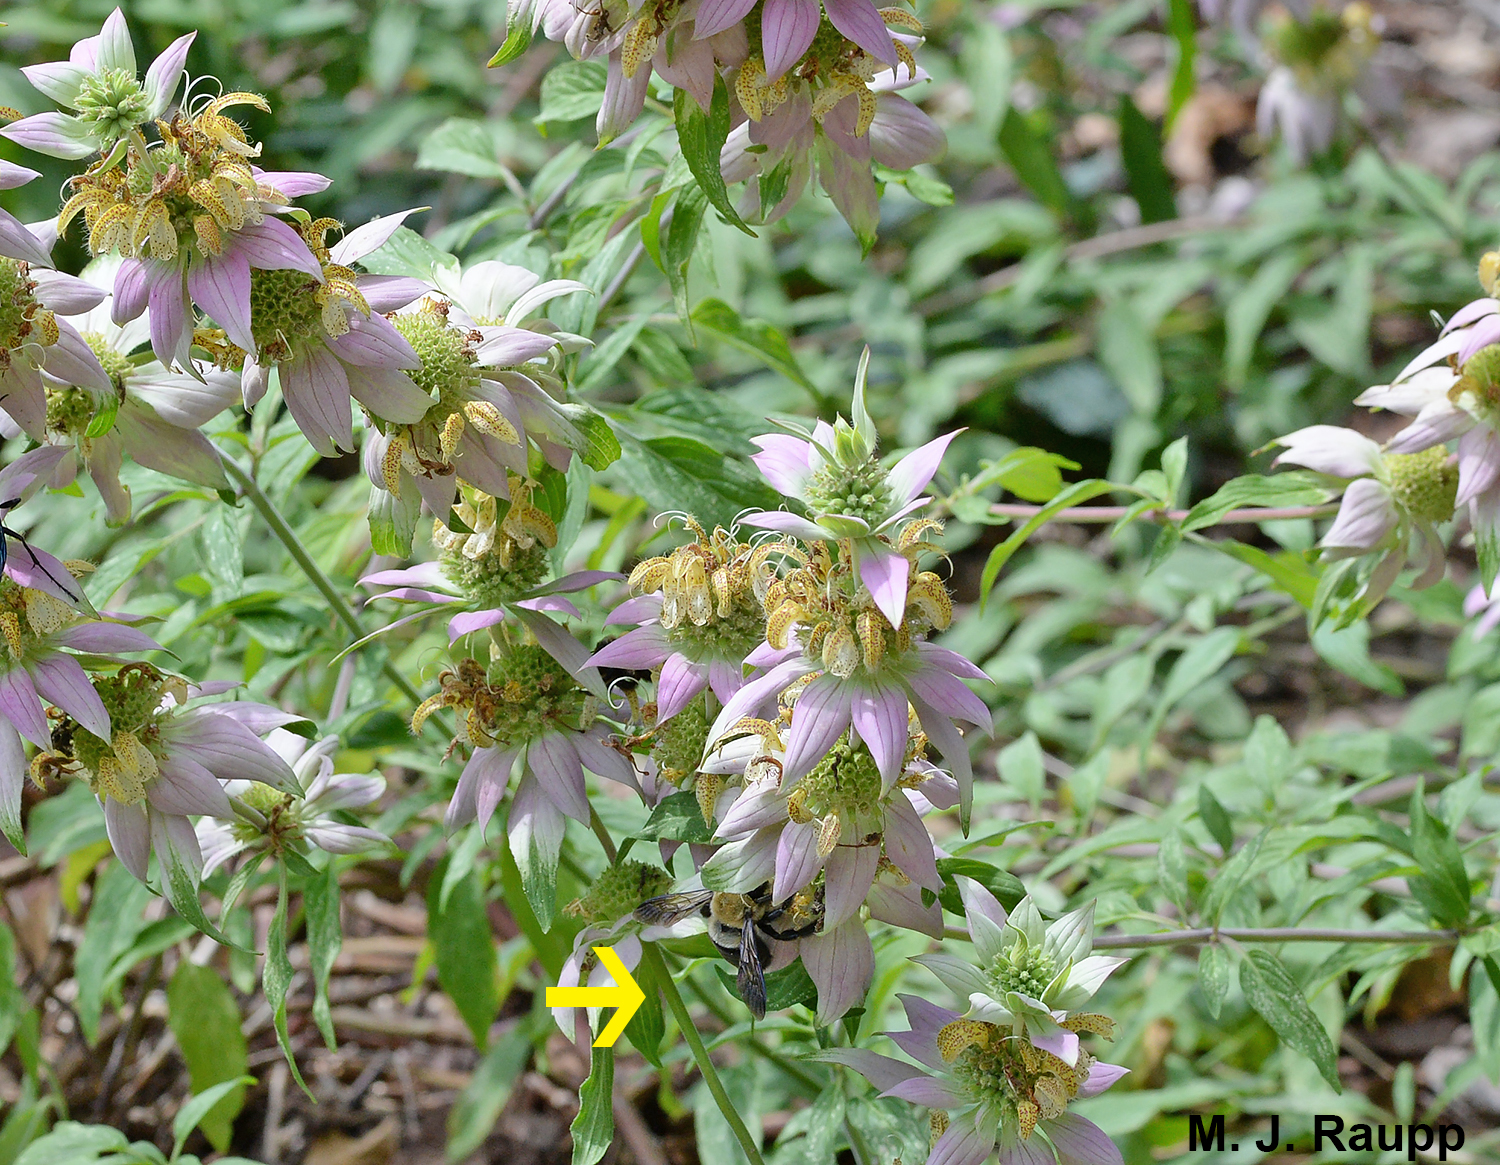 This large patch of spotted horsemint serves as a nocturnal roost for many carpenter bees.